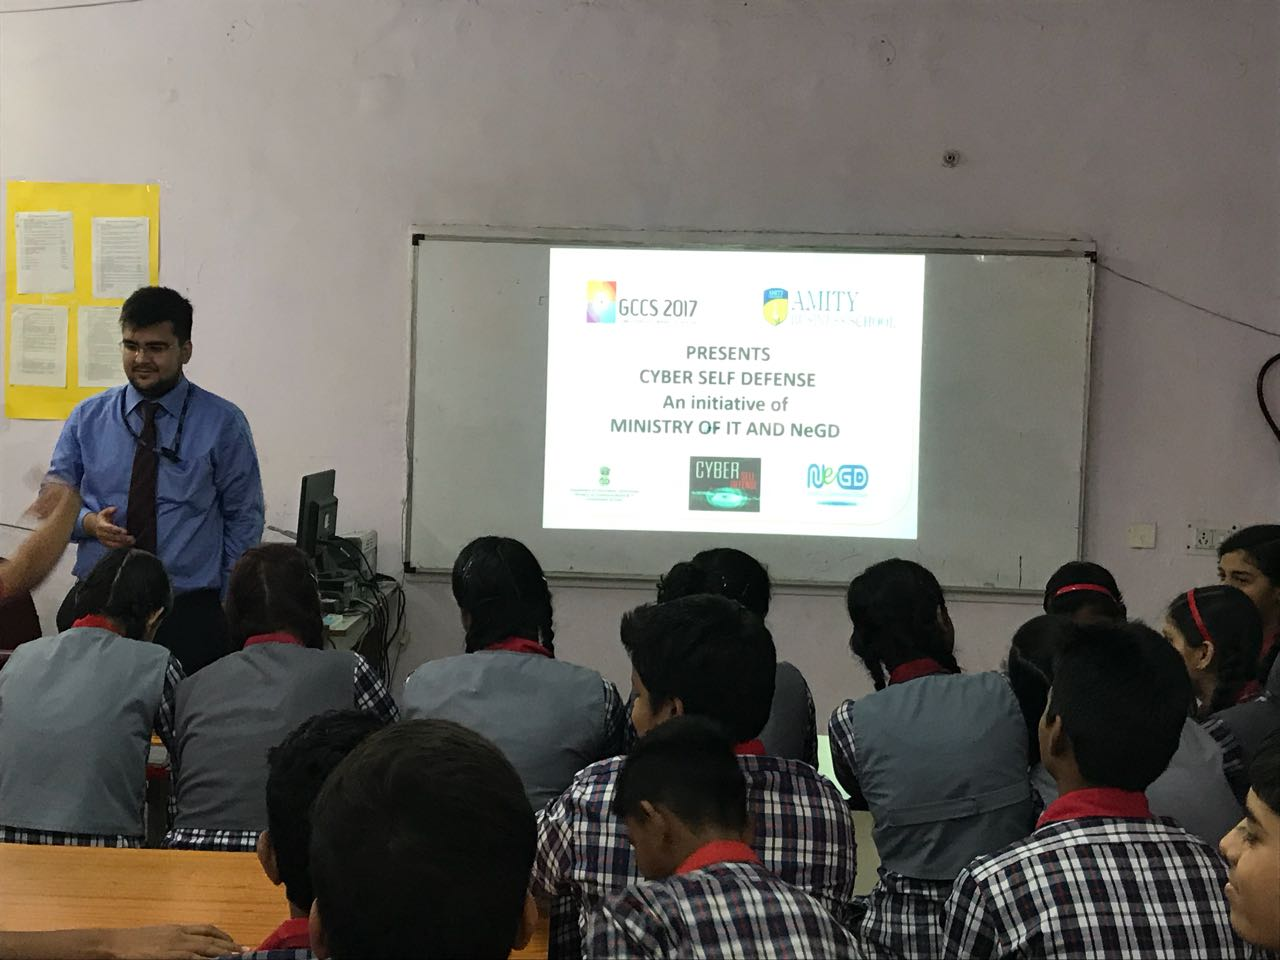 CYBER SELF DEFENSE WORKSHOP BY AMITY UNIVERSITY